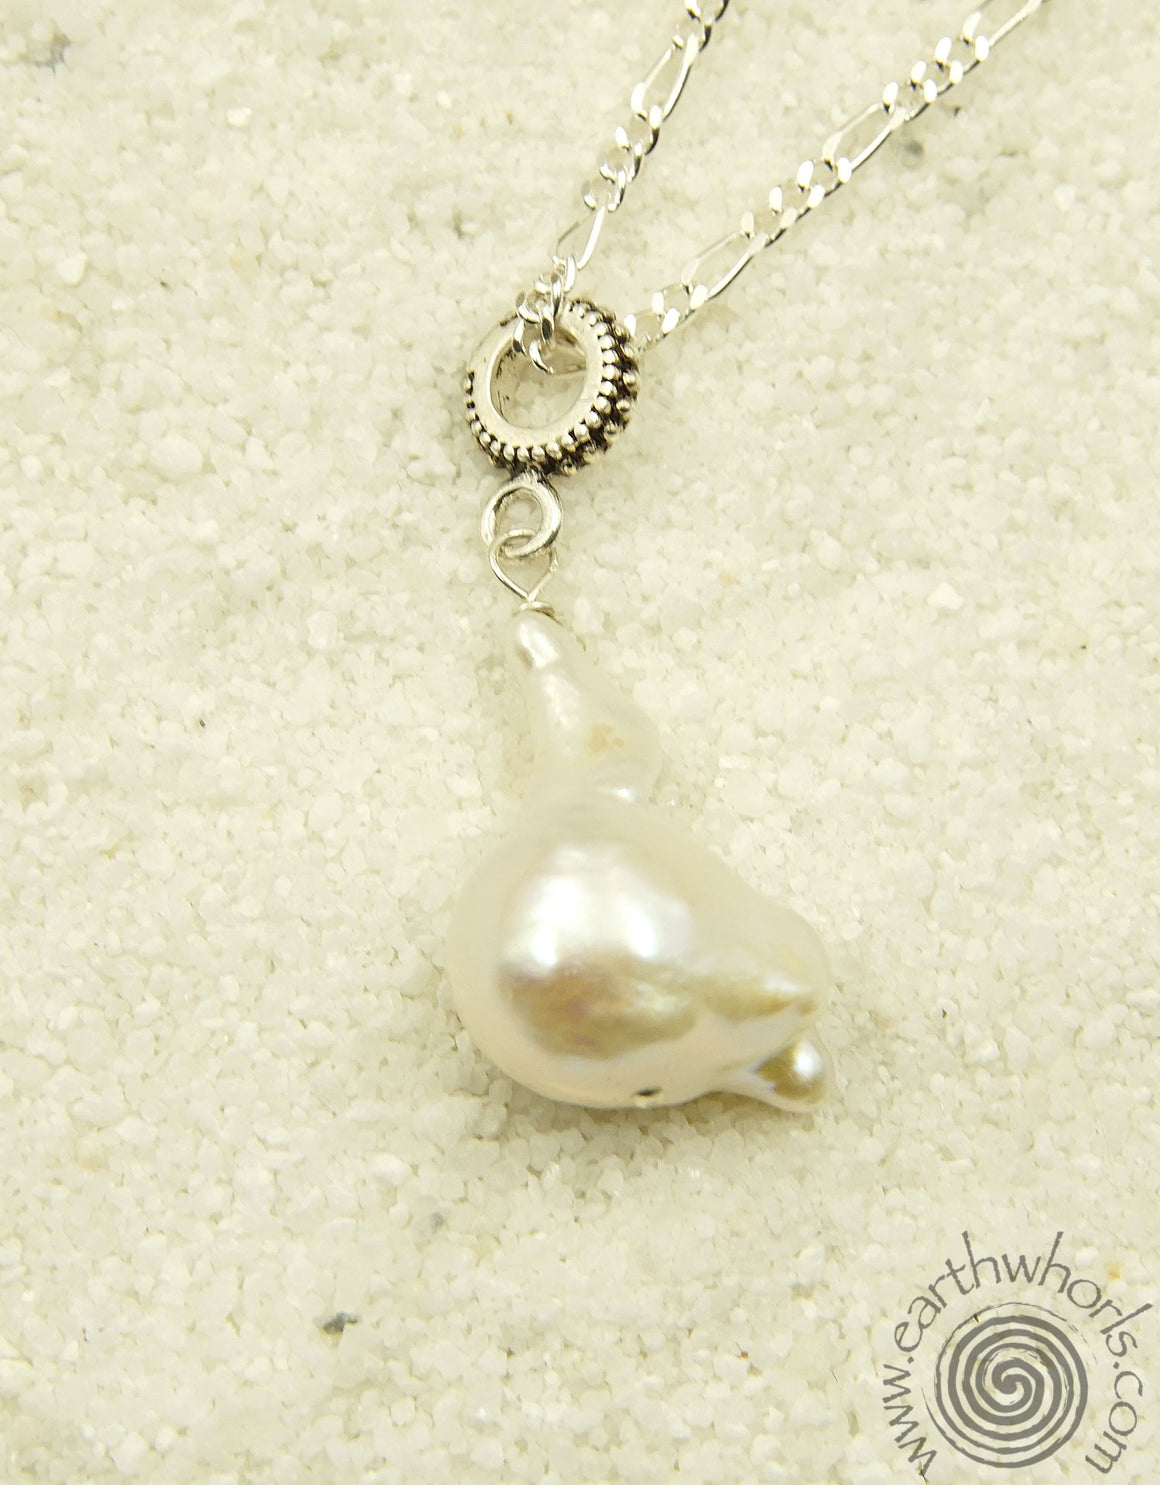 Fresh Water Pearl & Sterling Silver Pendant Necklace - EarthWhorls, LLC